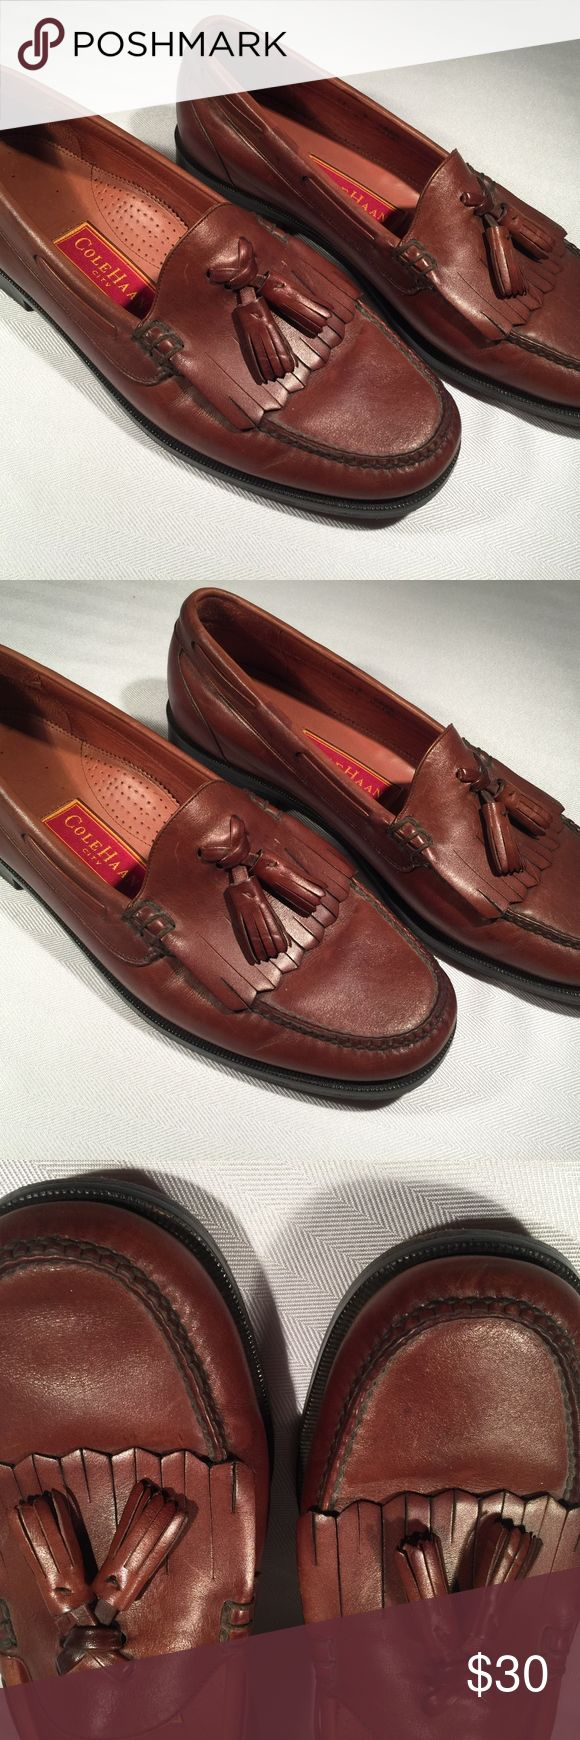 Cole Haan Brown Slip on Loafers Tassel in Men SZ11 Brand- Cole Haan Item- Mens slip on dress shoes with tassels  Size- 11 D Color- Brown Condition- Good Condition light wear    View all pictures Cole Haan Shoes Loafers & Slip-Ons